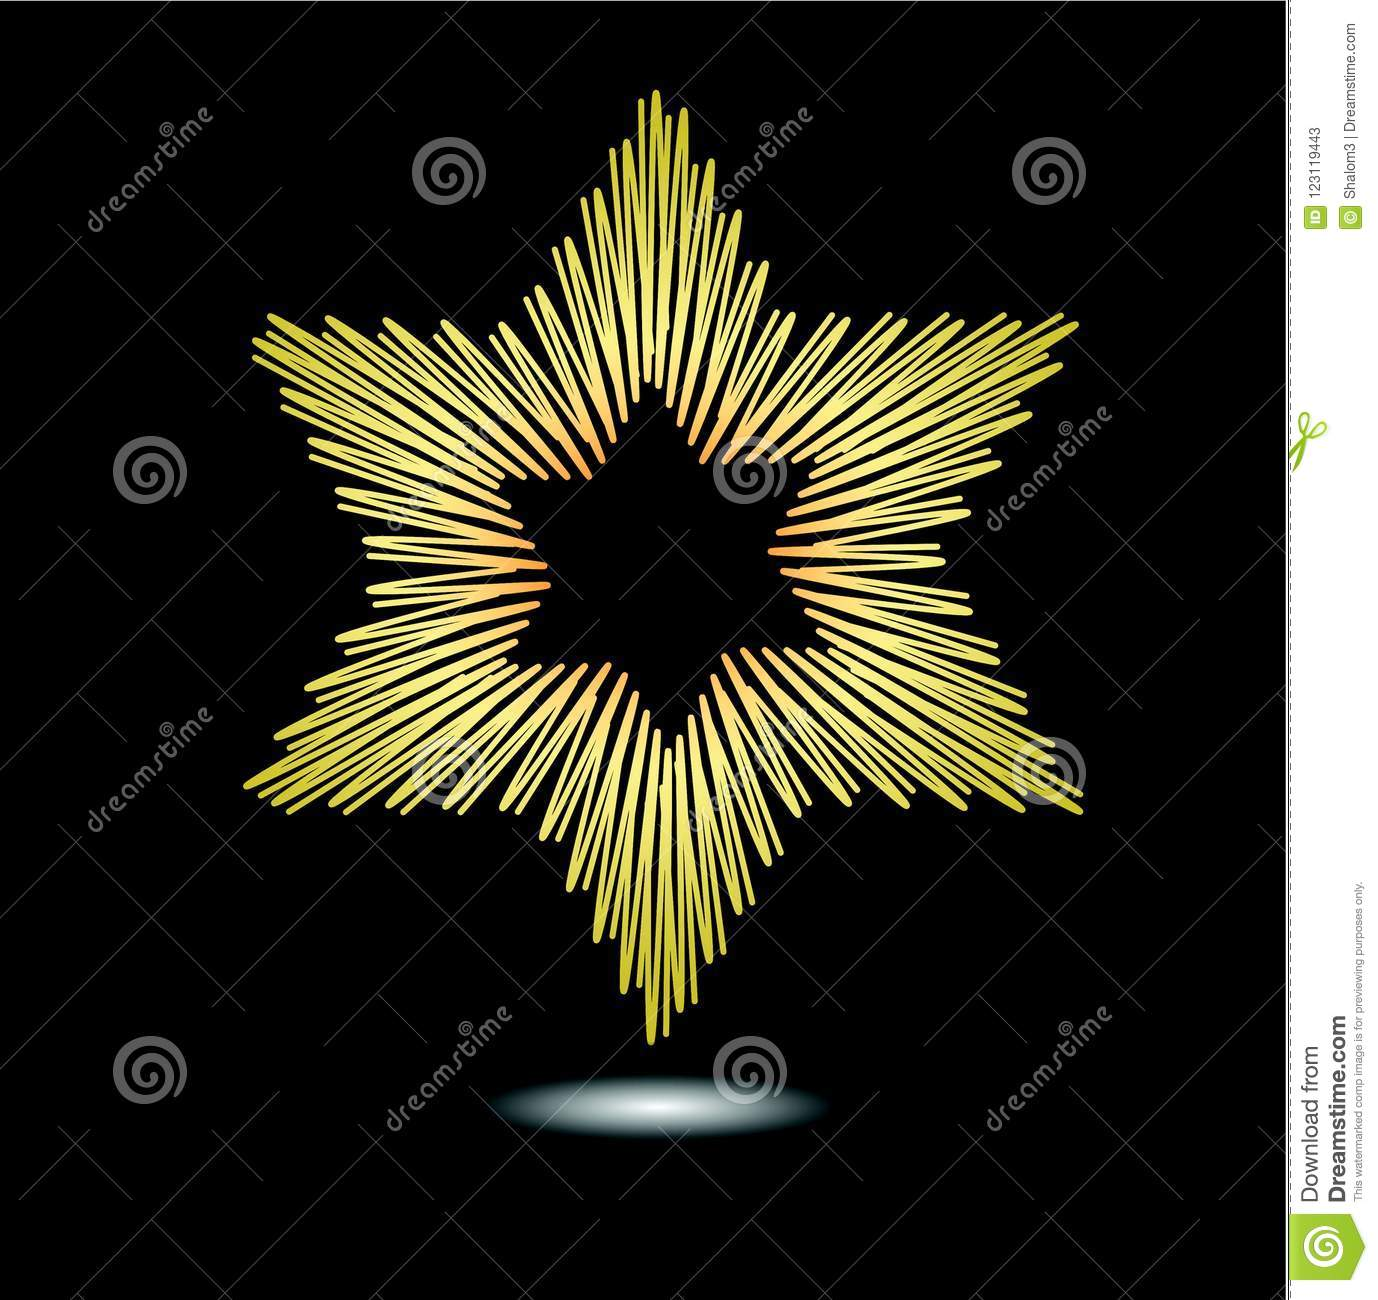 Star of David, jewish religion symbole, golden star with light effect isolated on black background. Drawing in modern grunge style